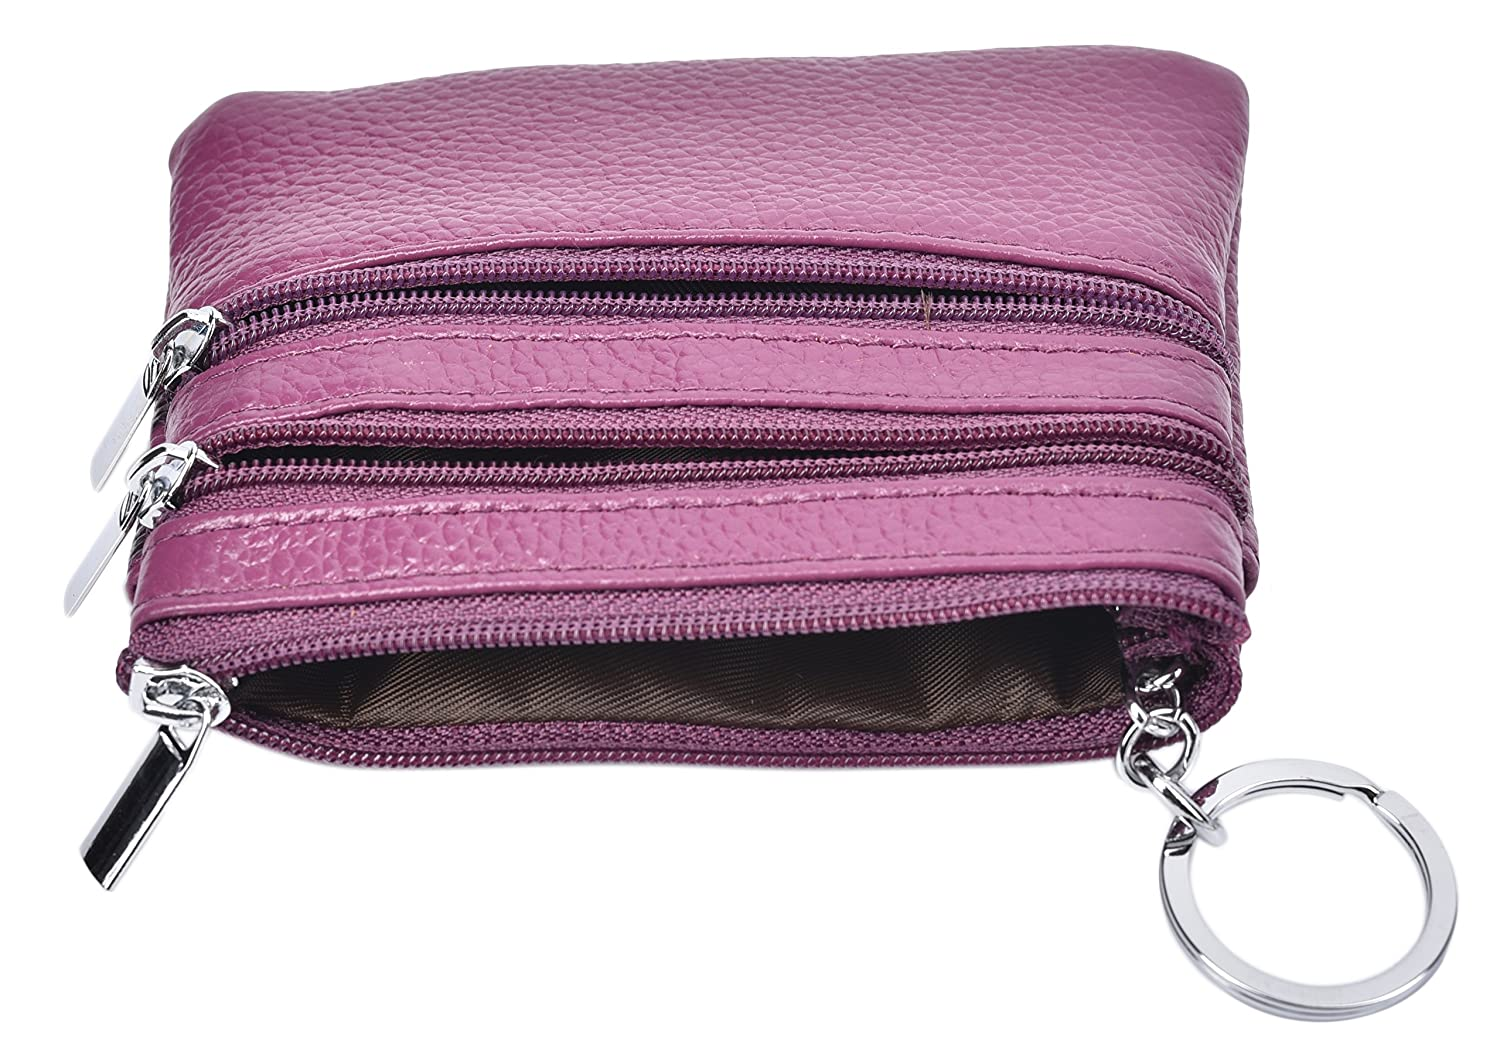 Outrip Womens Mini Coin Purse Wallet Genuine Leather Zipper Pouch with Key Ring Black